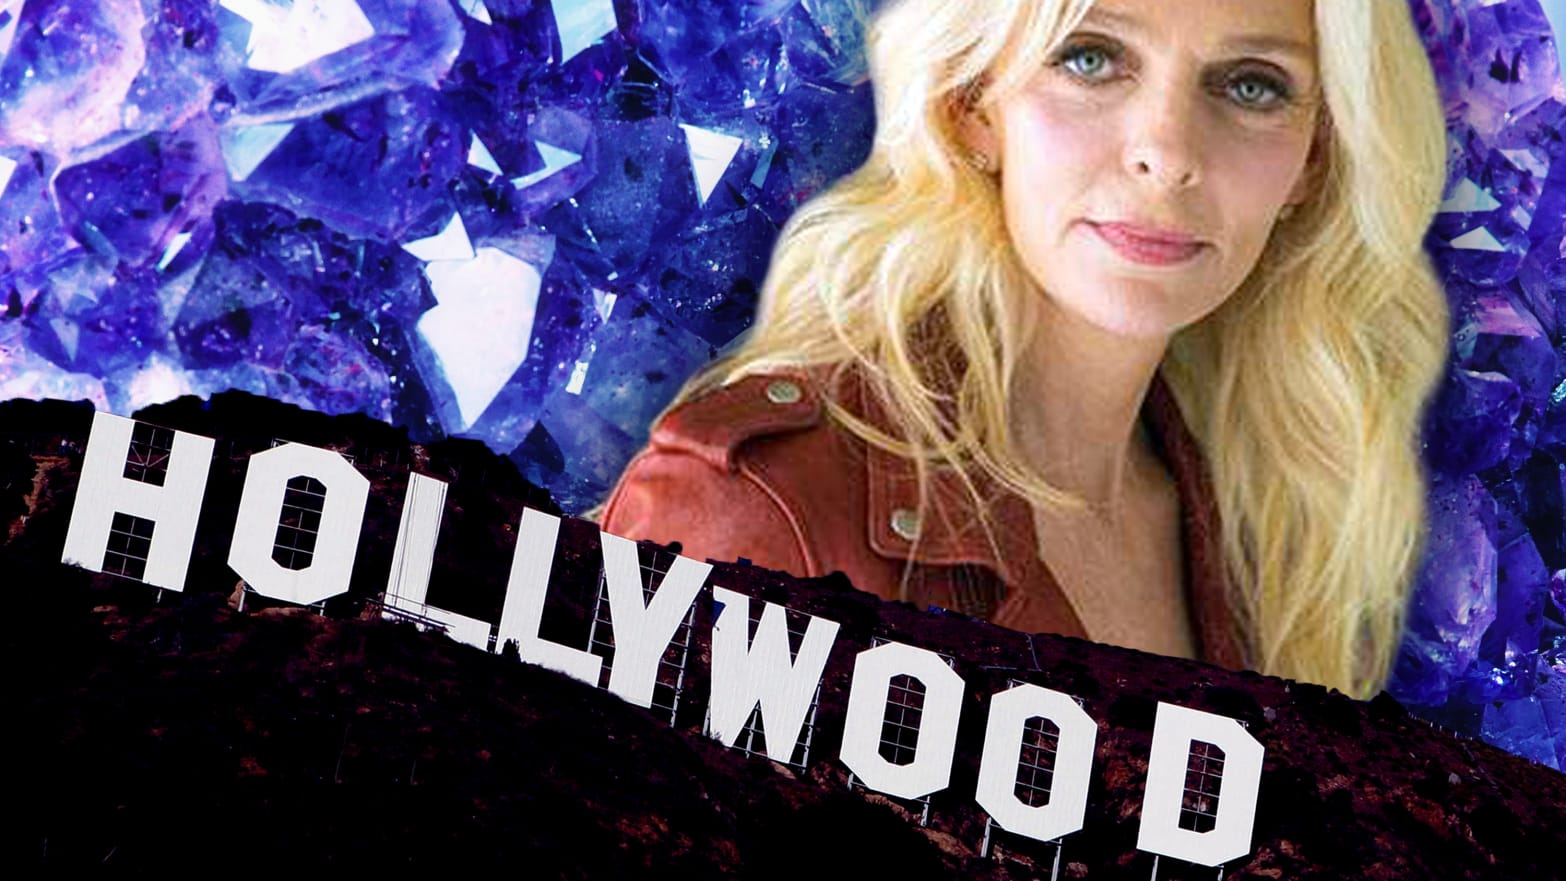 Audrey Hope, Crystal Healer to the Hollywood Stars, Tells All: 'People Are Really Suffering'